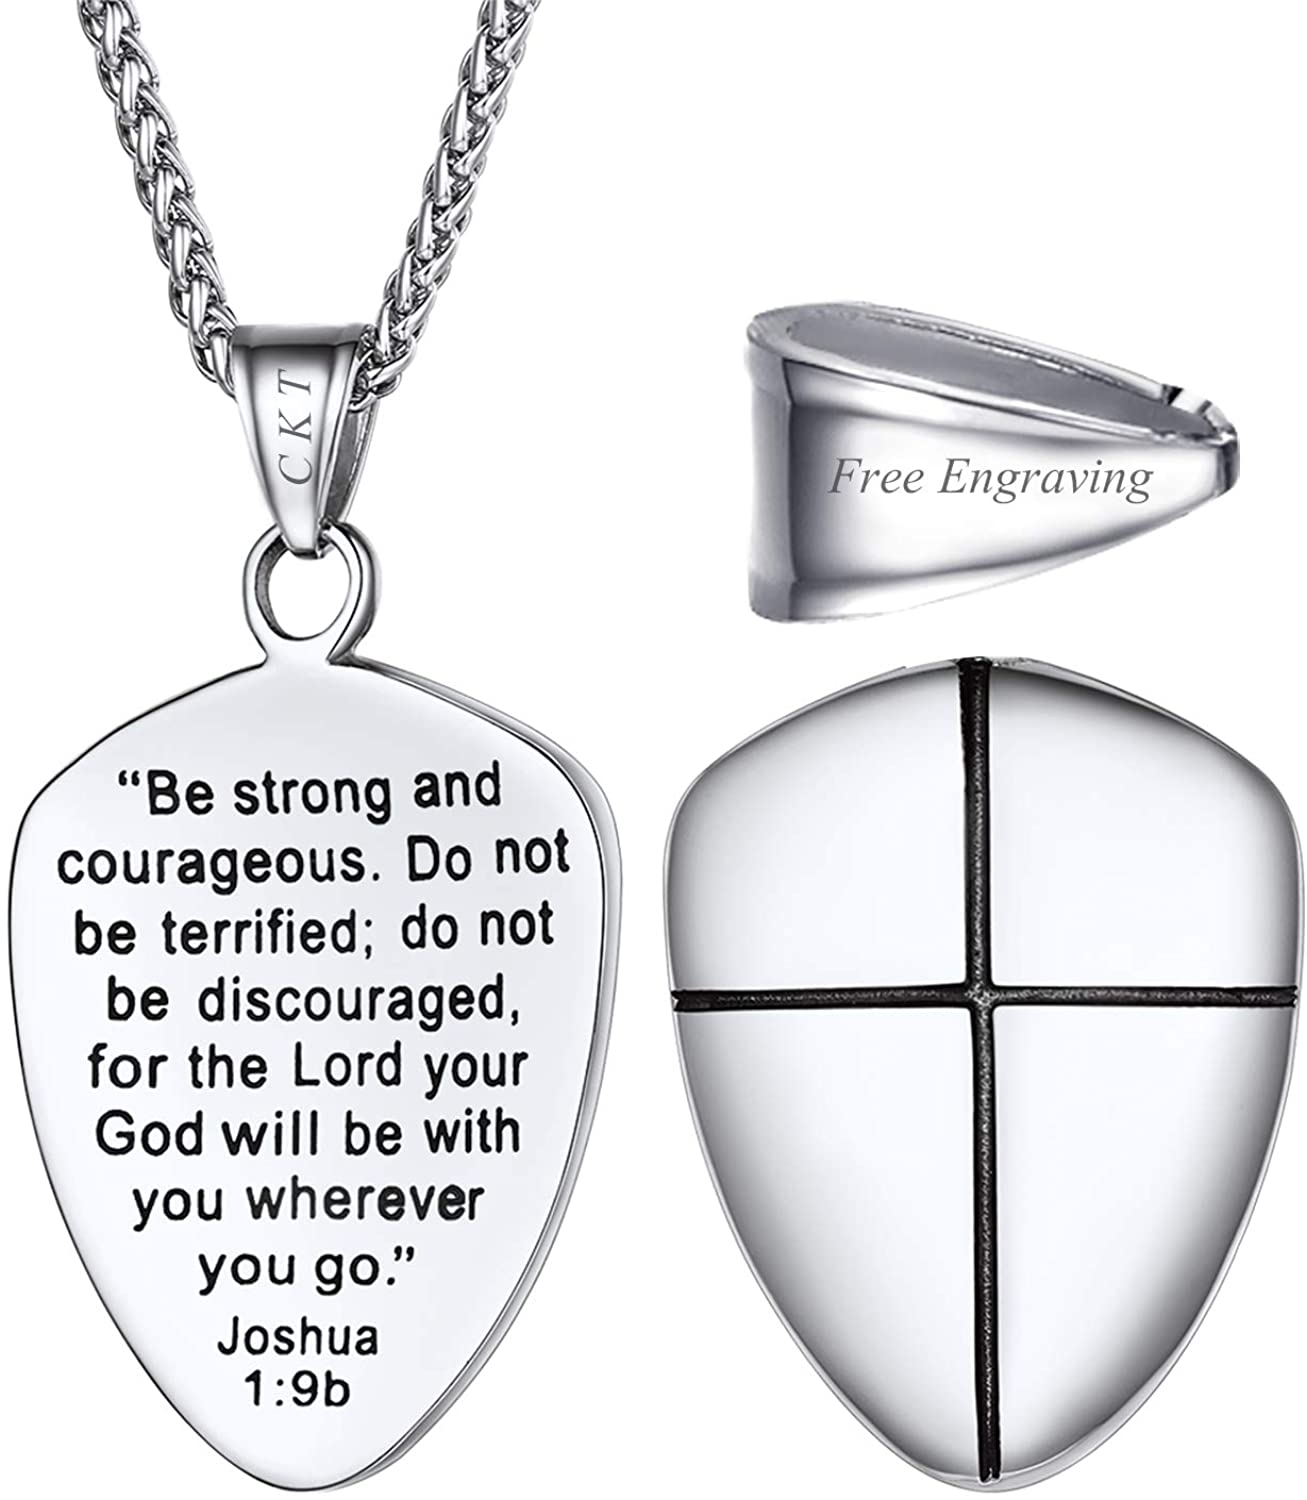 U7 Shield of Faith/Inspirational Pendant Chain 22 Inch Joshua 1:9 Cross Amulet Necklace, Text Engrave Customizable, 3 Color Options